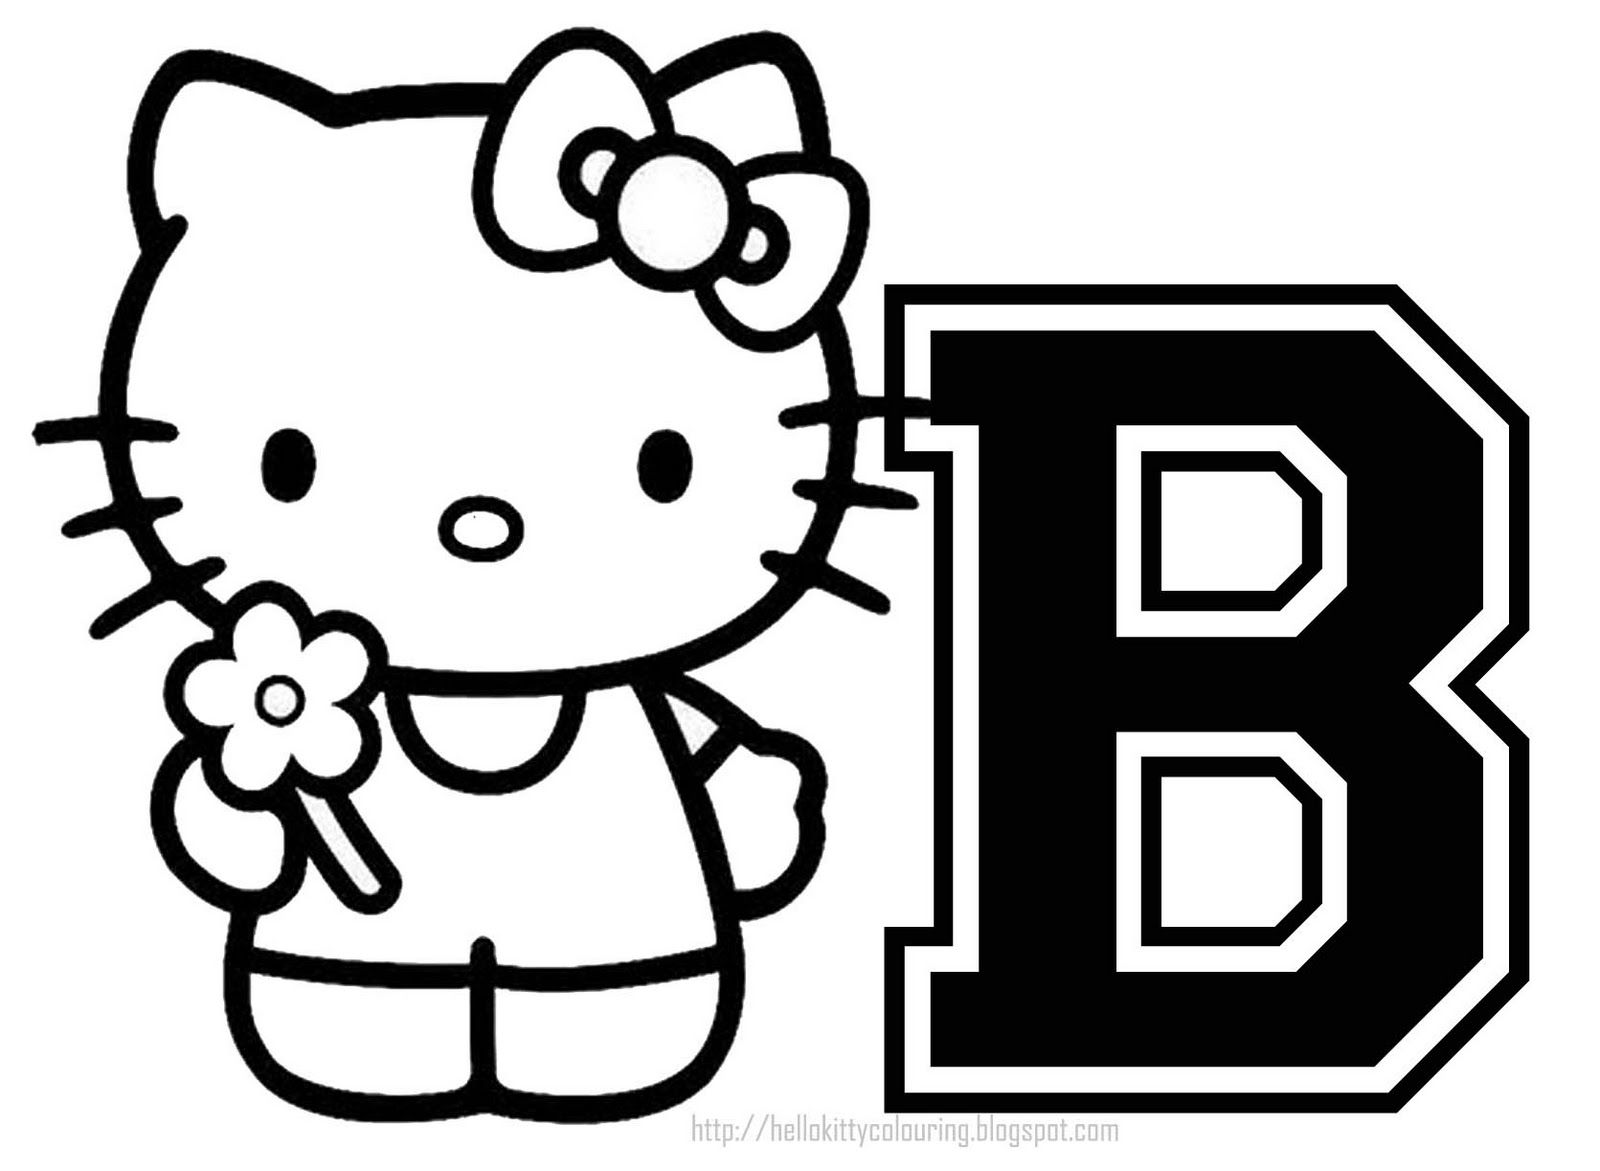 Free coloring pages for hello kitty - Free Hello Kitty Coloring Pages Invitations Paper Dolls And So Much More